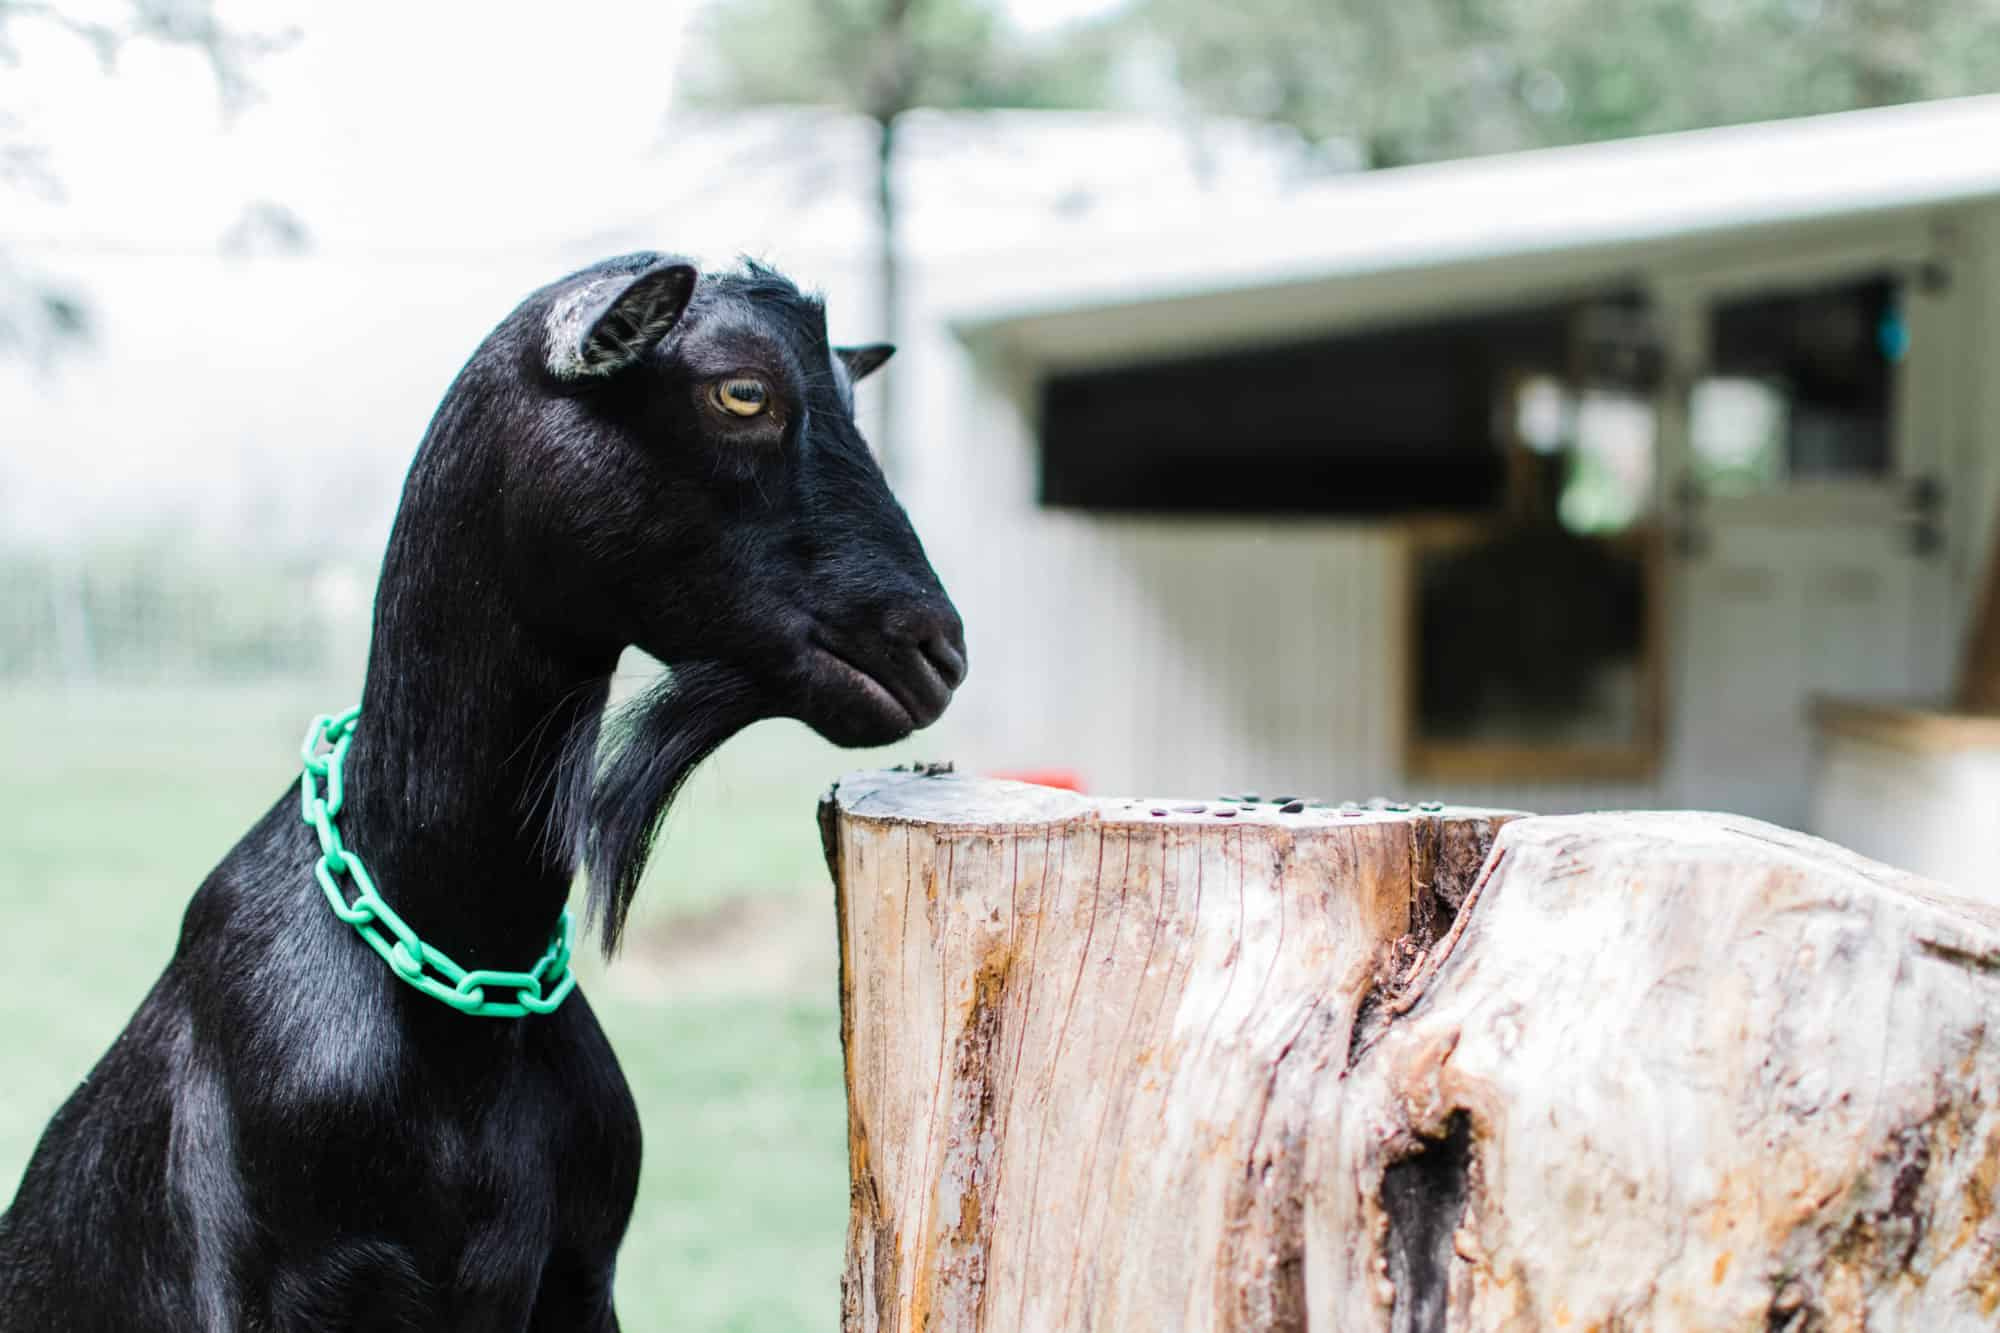 Frenchie Farm beginner tips for raising goats